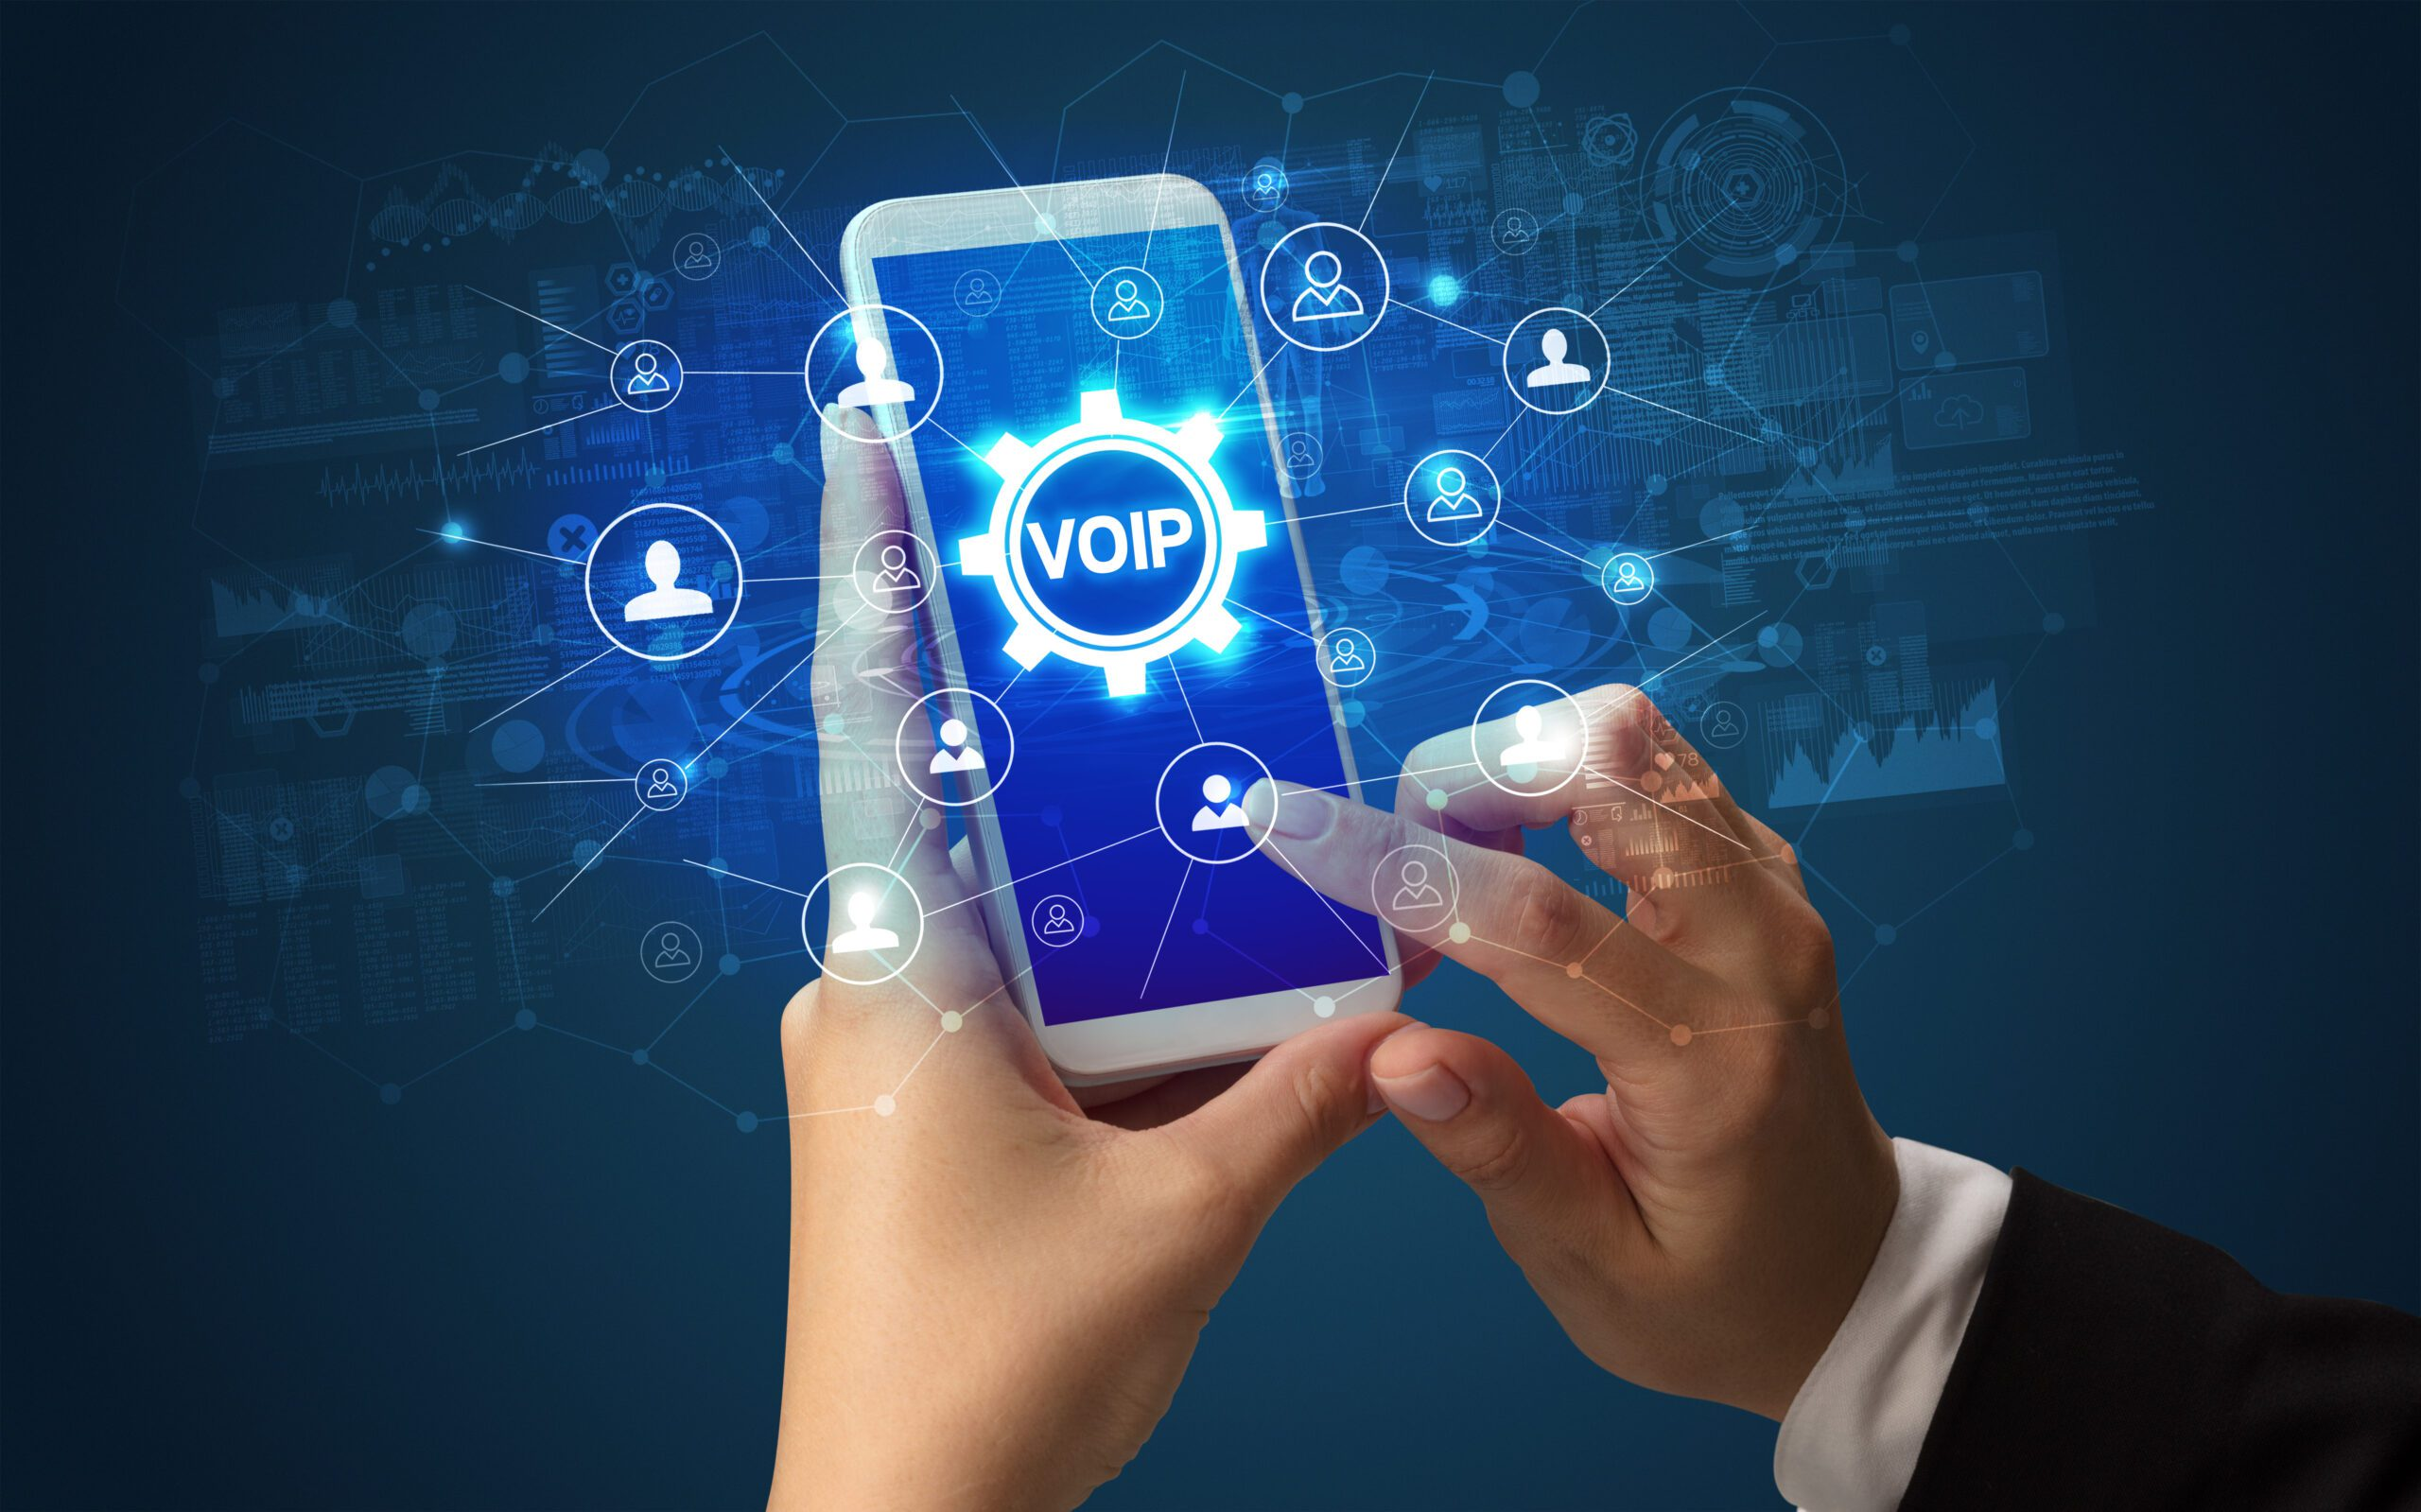 Female hand holding smartphone with VOIP abbreviation, modern technology concept